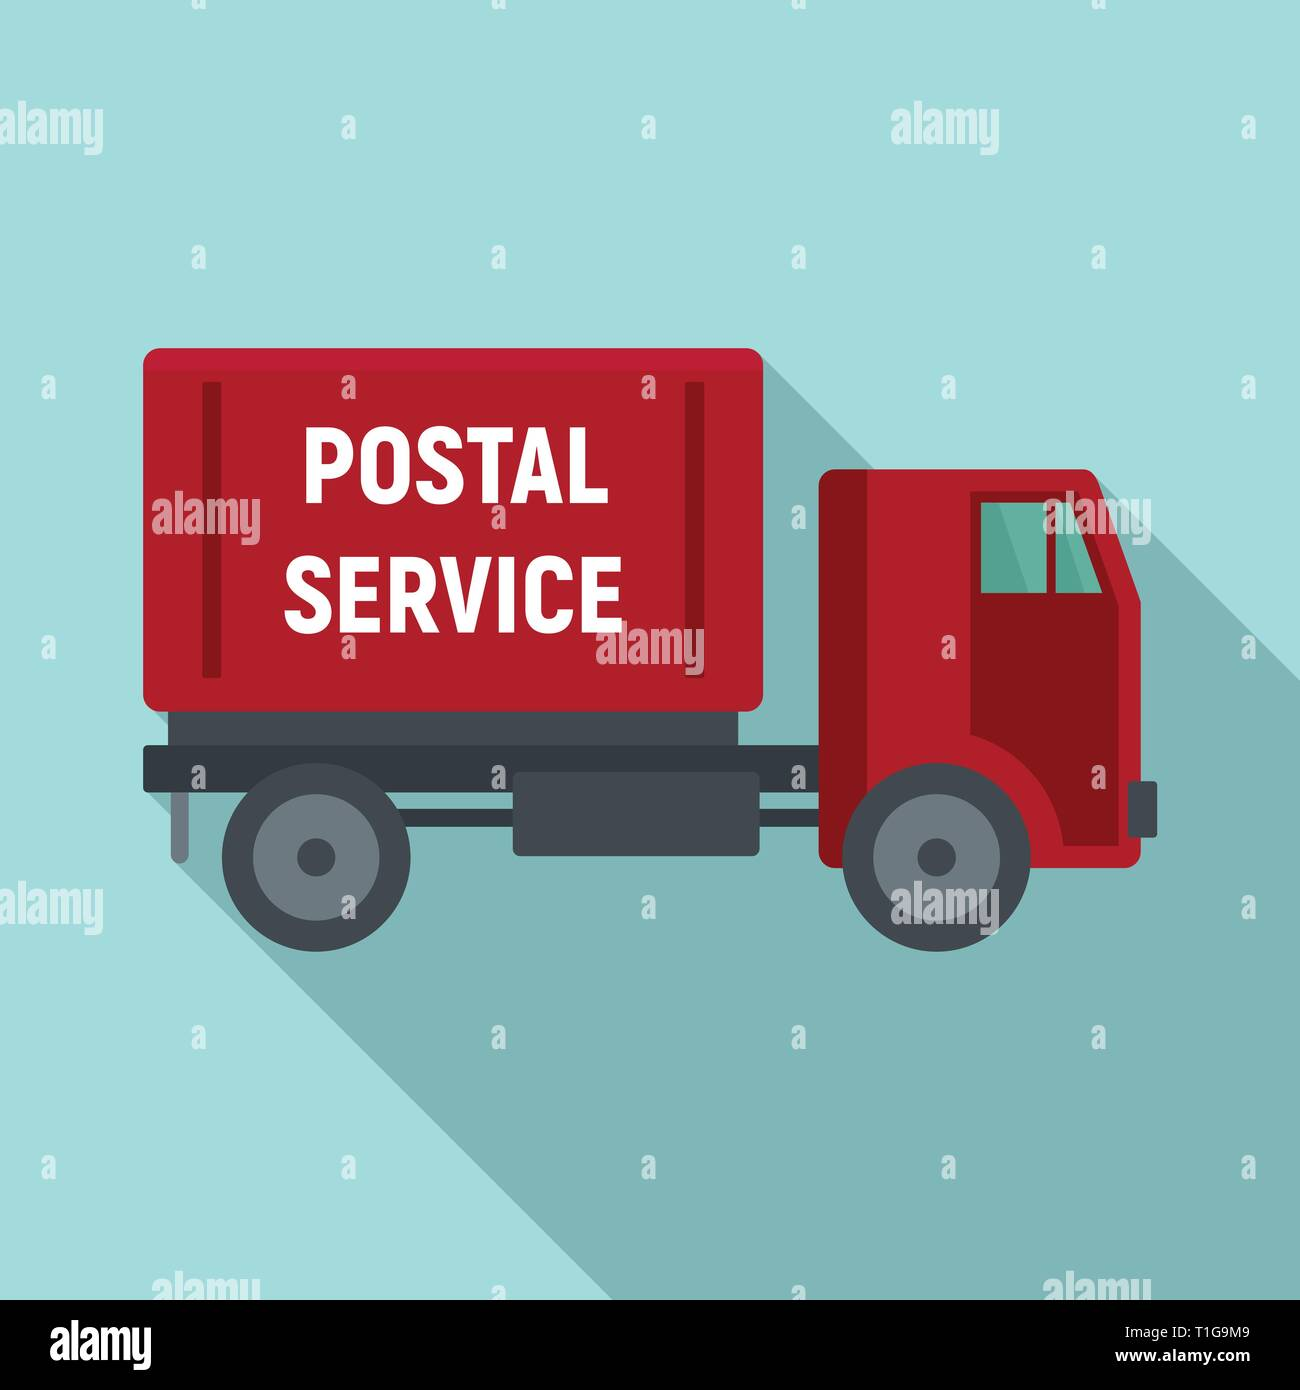 Postal service truck icon. Flat illustration of postal service truck vector icon for web design - Stock Image